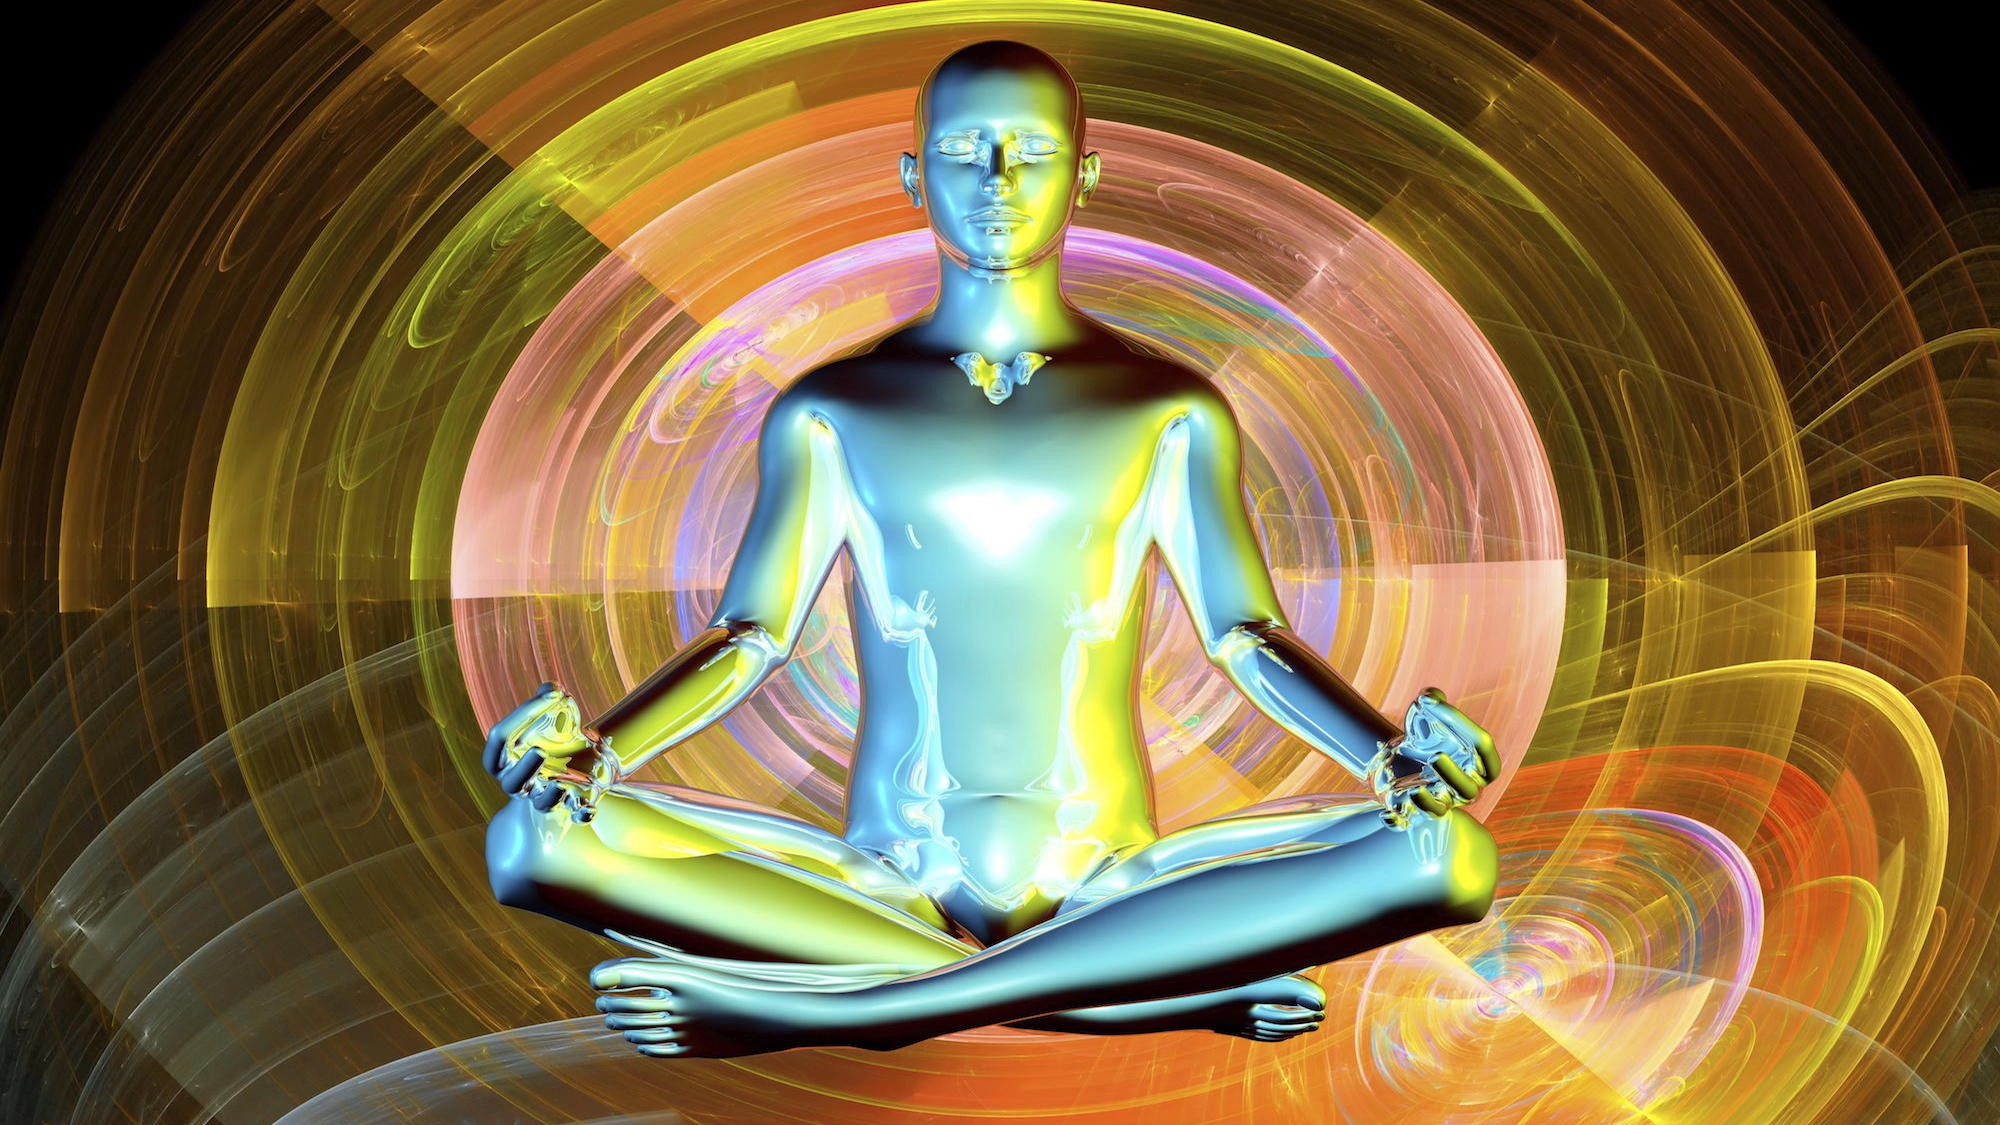 Competitive Psychedelic Users Are Chasing 'Ego Death' and